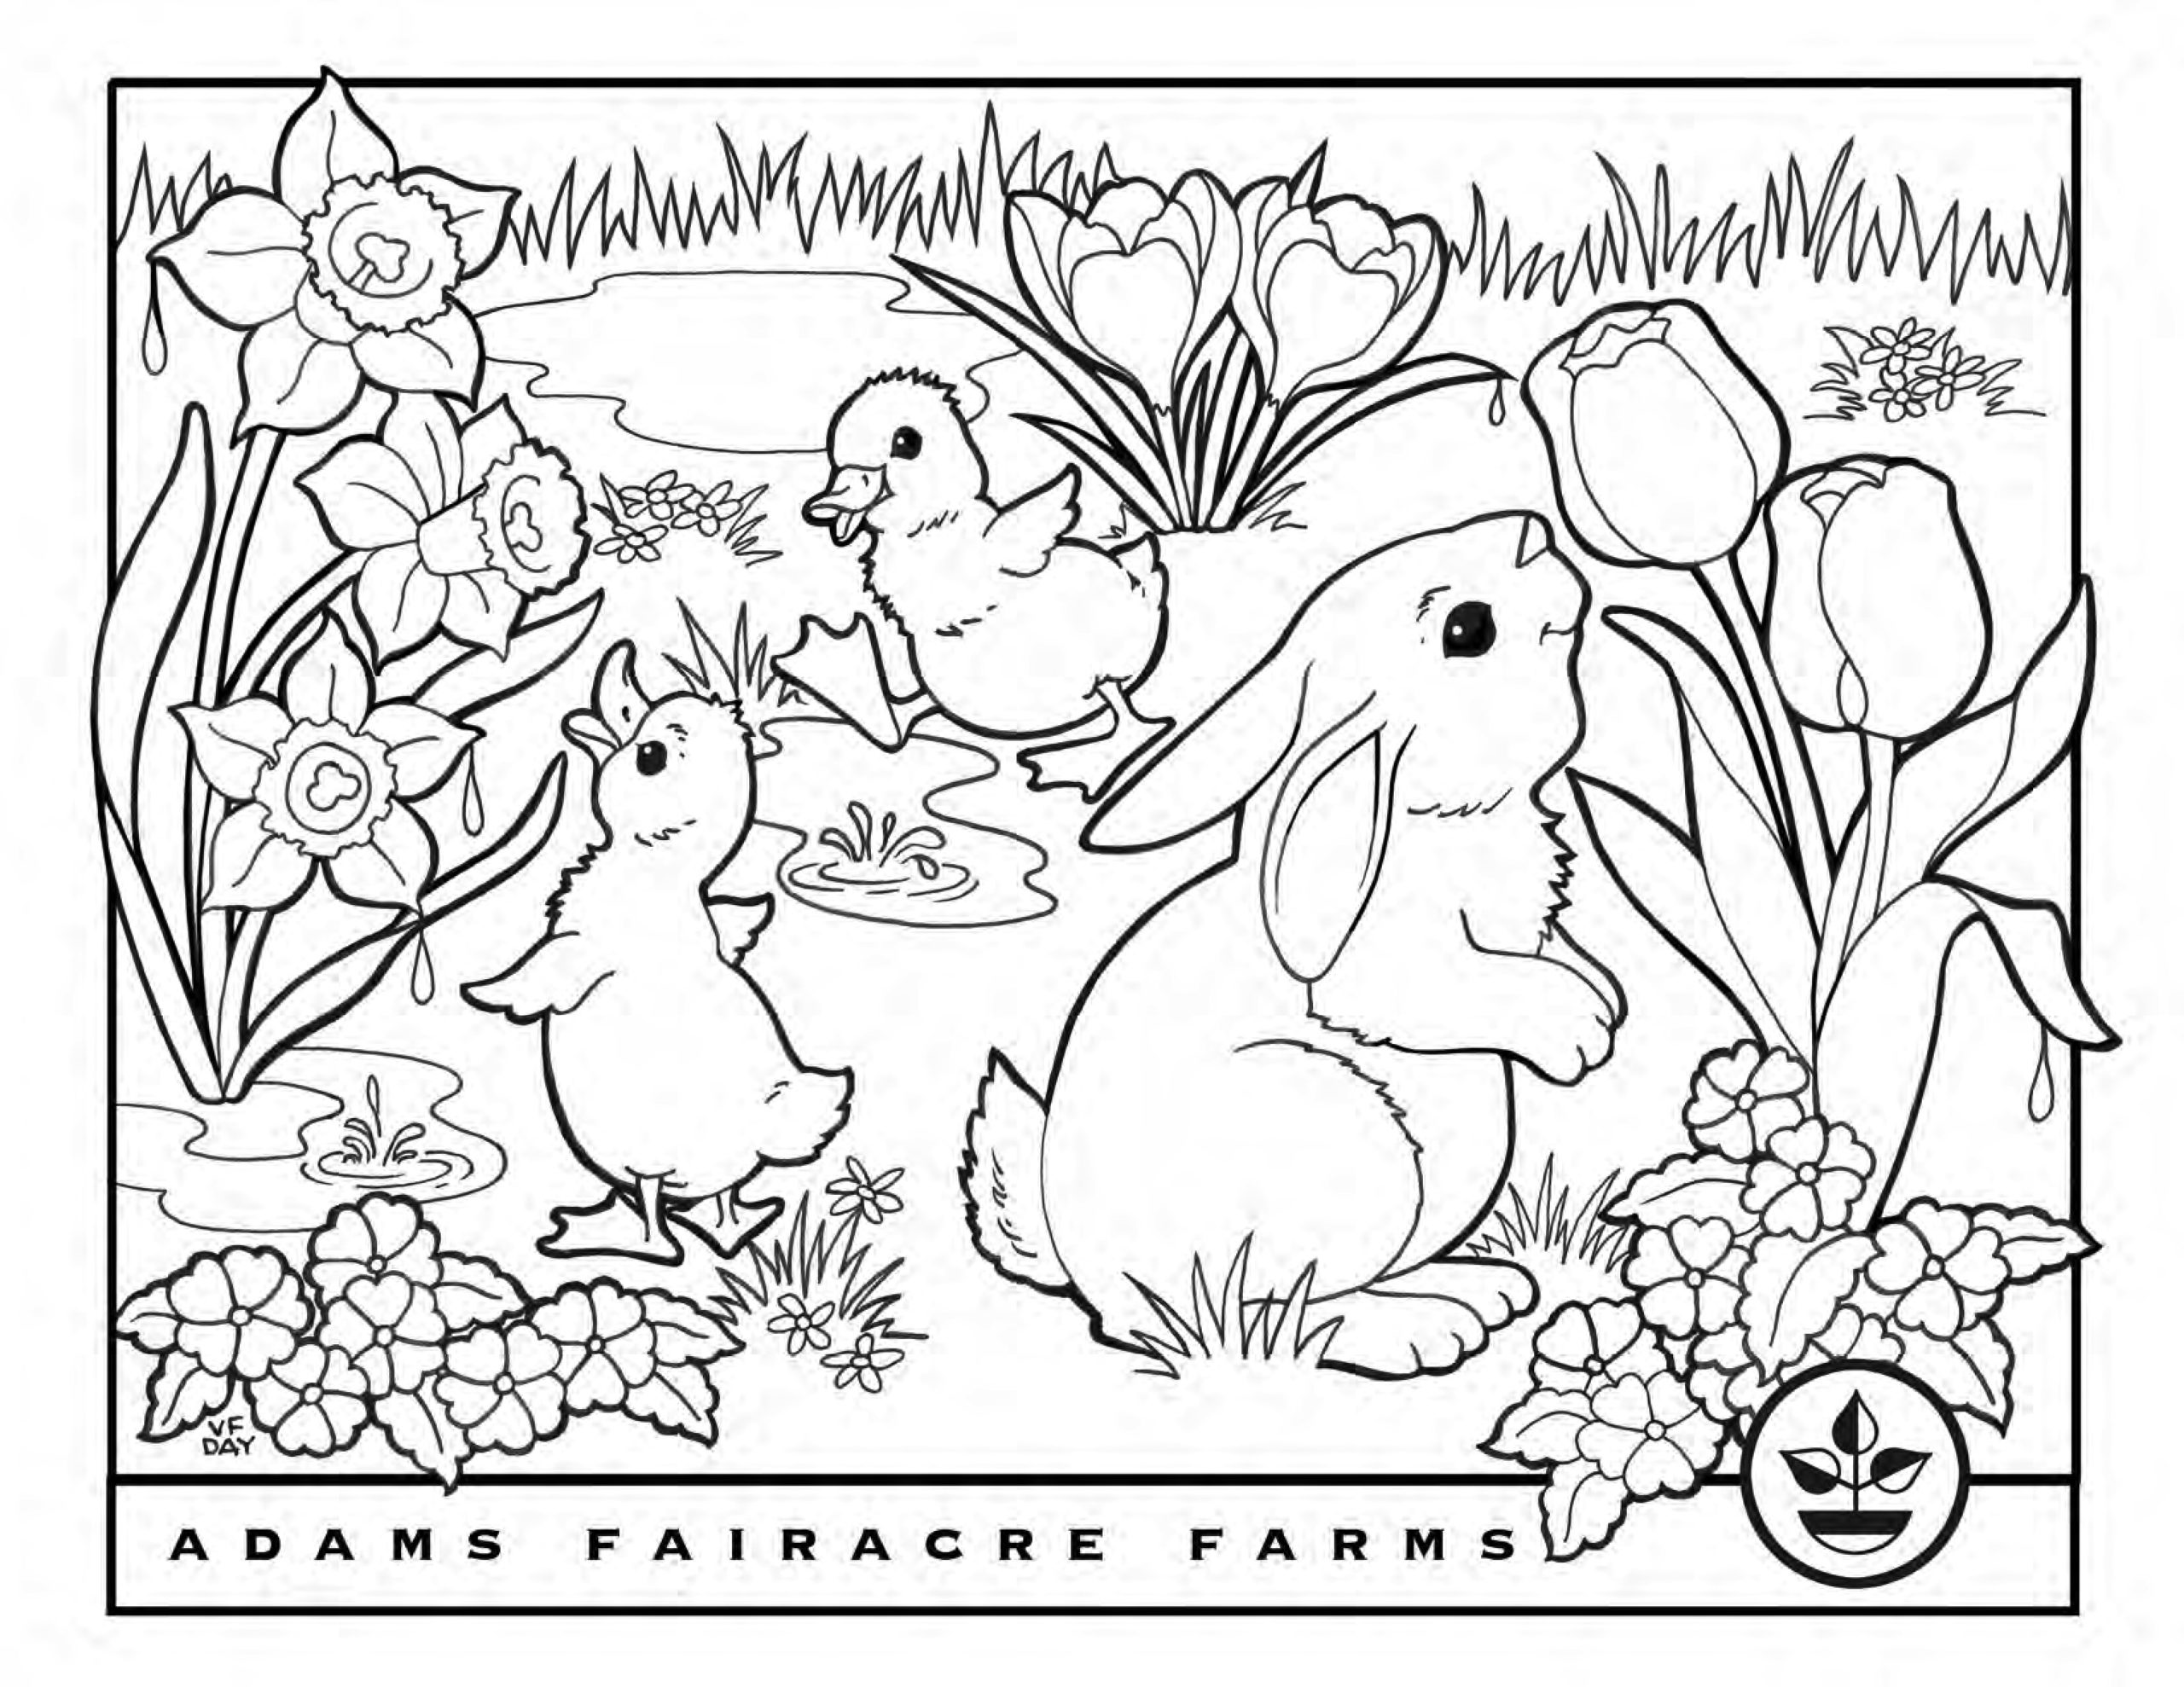 Easter Coloring Pages Adams Fairacre Farms